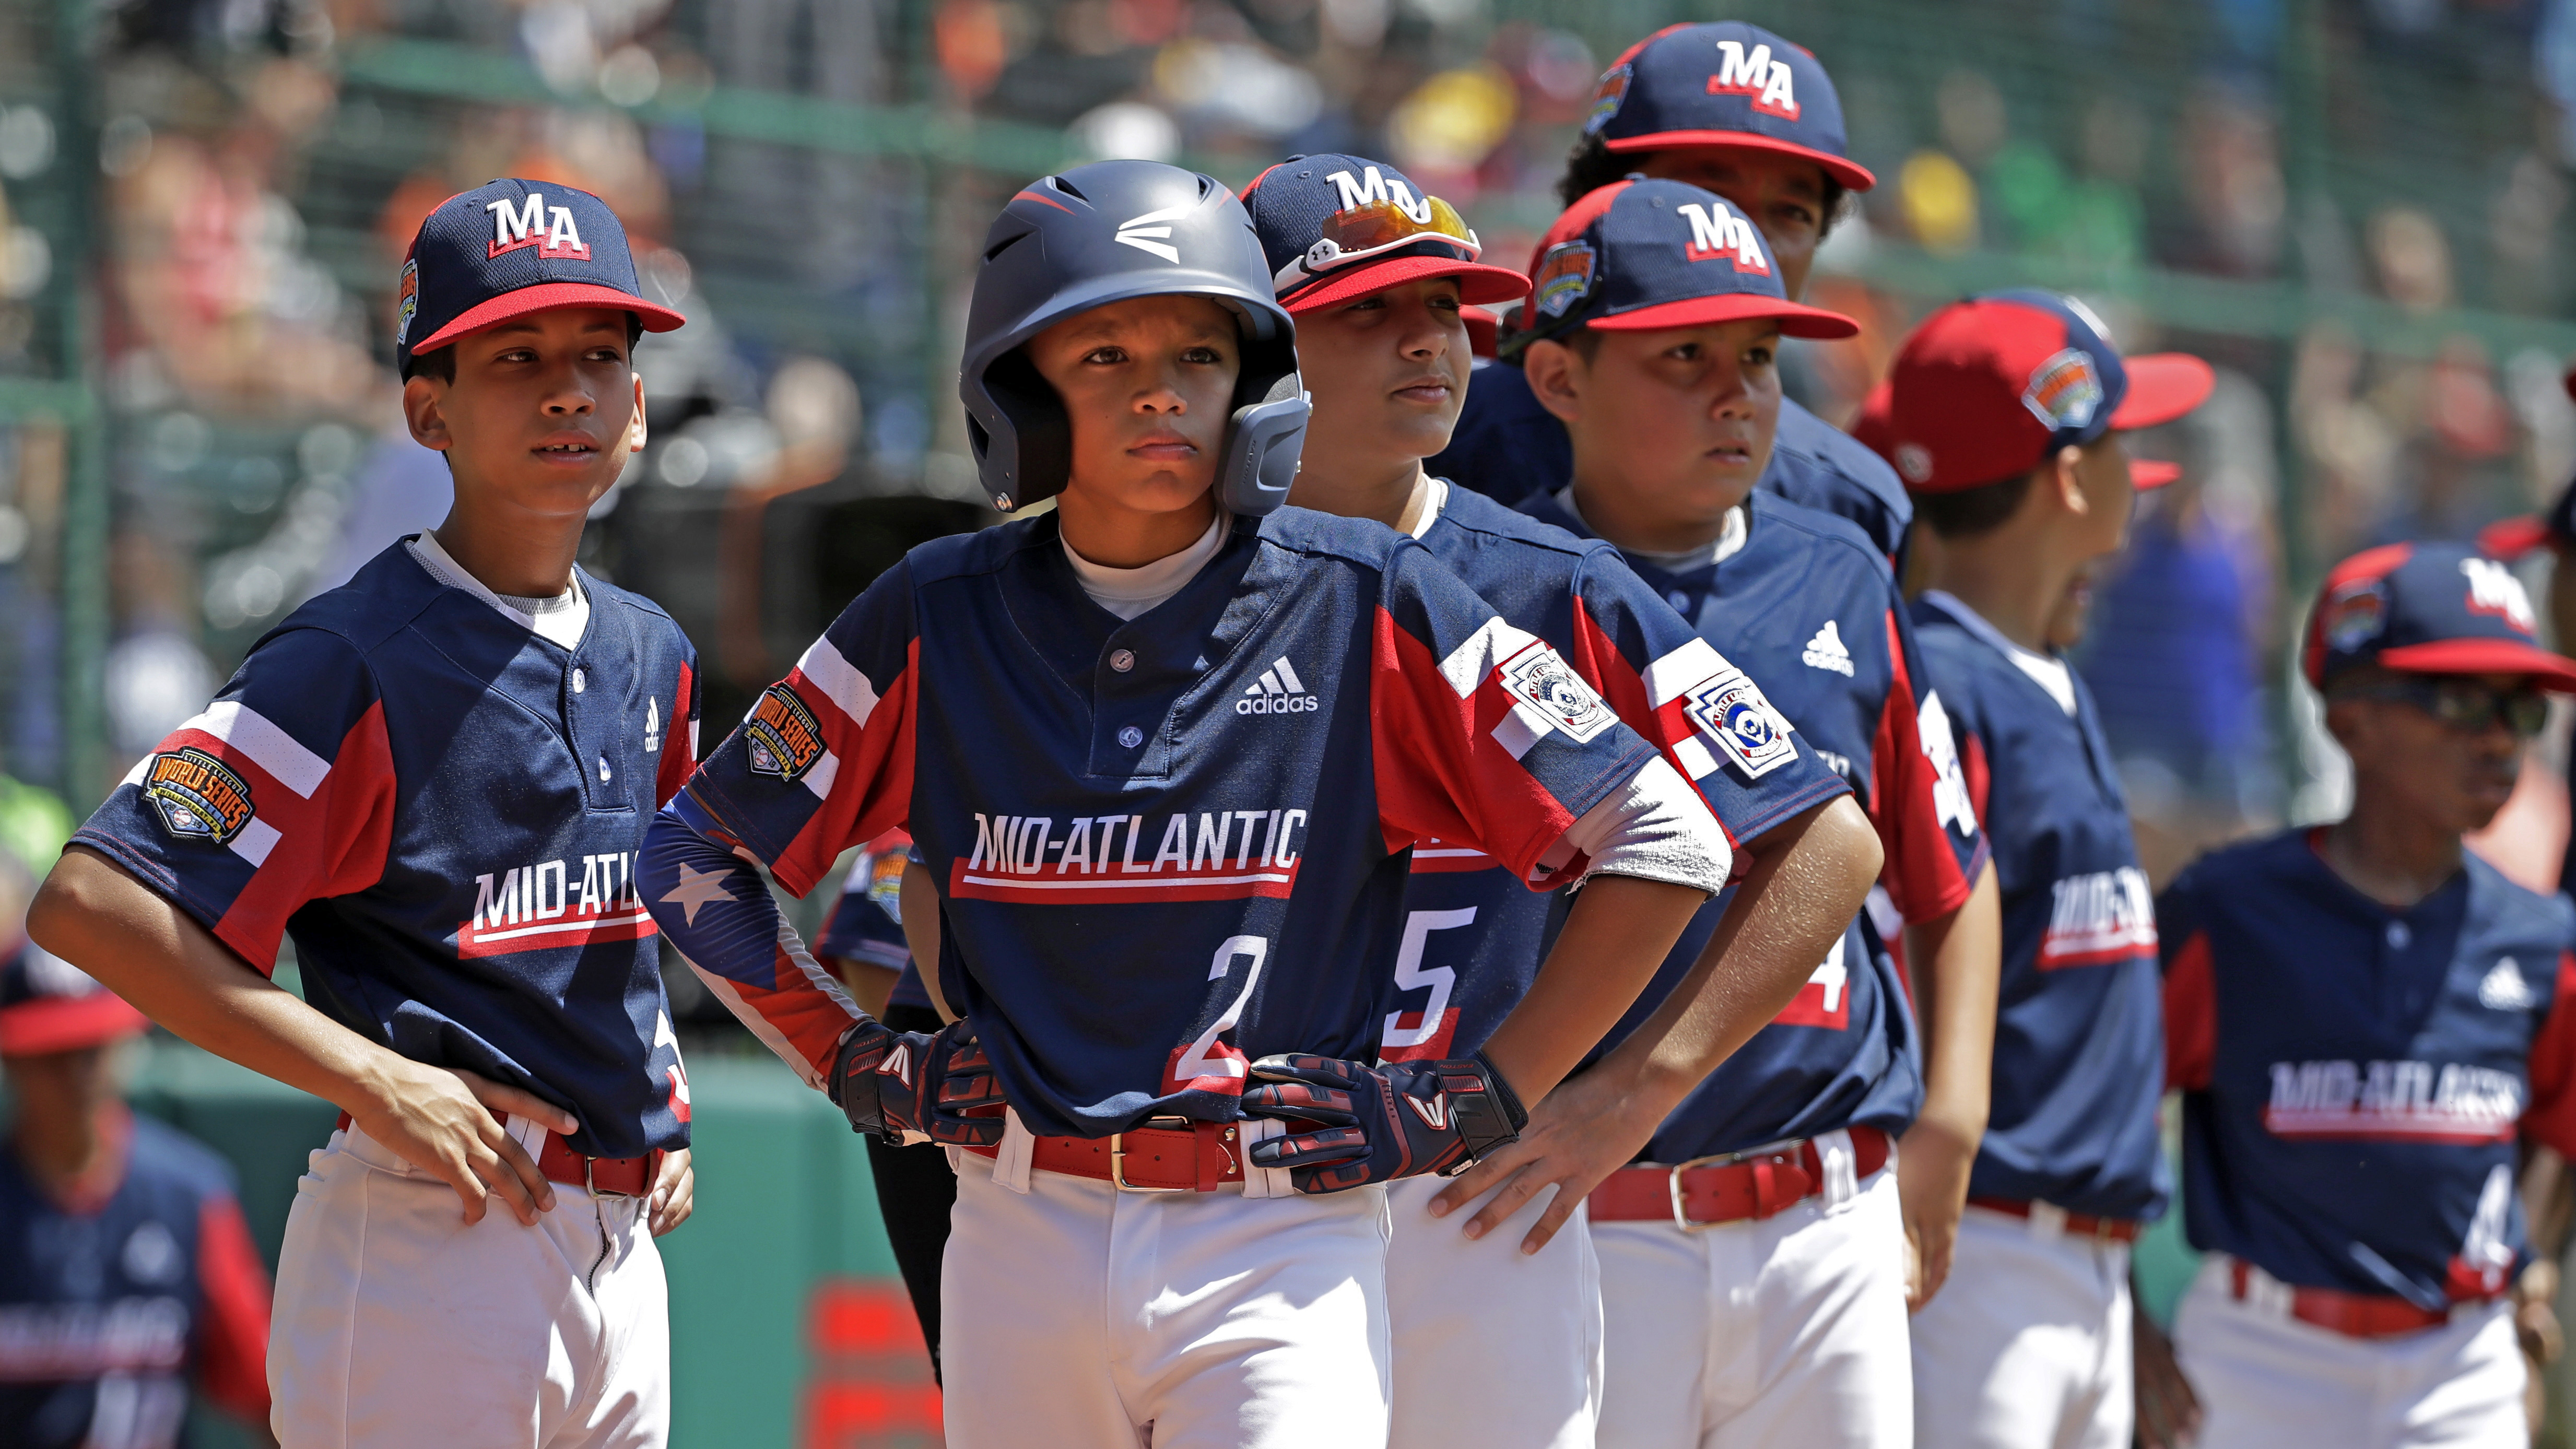 N.J. Little League team keeps the dream alive after big World Series game win